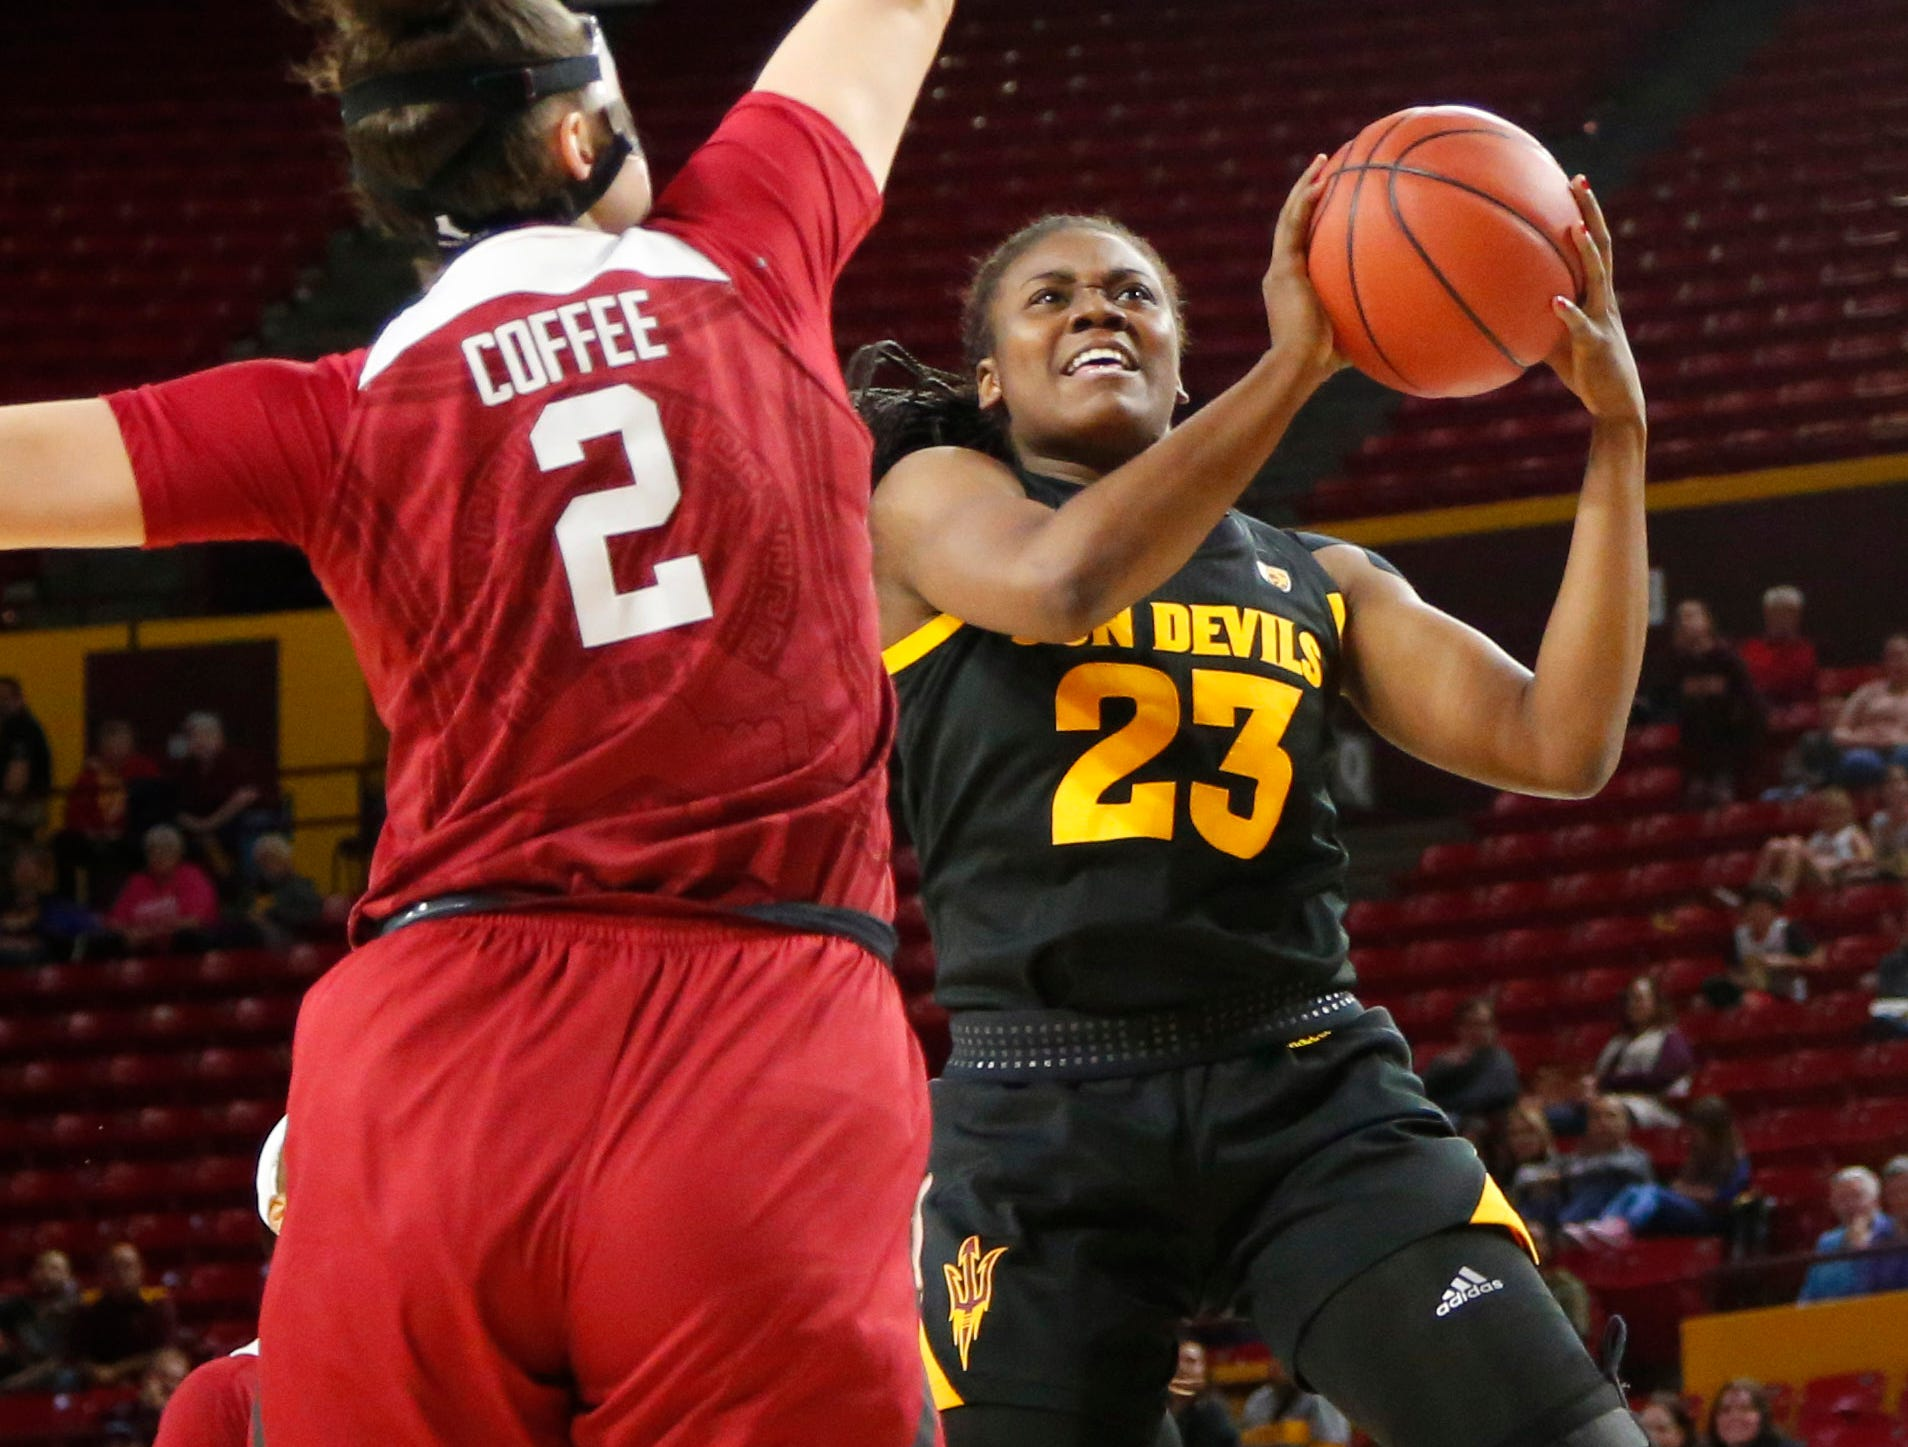 Arizona State University Iris Mbulito (23) goes up for a lay up while being guarded by Stanford University Shannon Coffee (2) during a women's basketball game at Well Fargo Arena in Tempe on January 11.